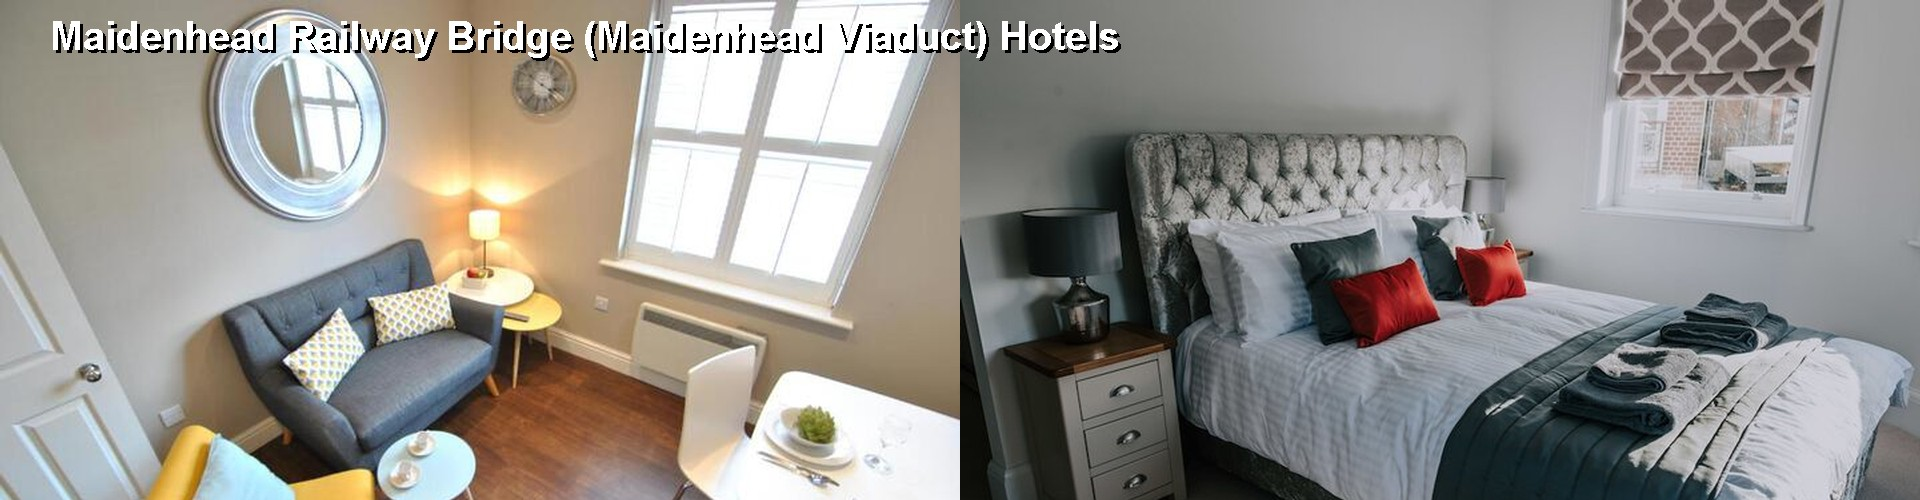 5 Best Hotels near Maidenhead Railway Bridge (Maidenhead Viaduct)